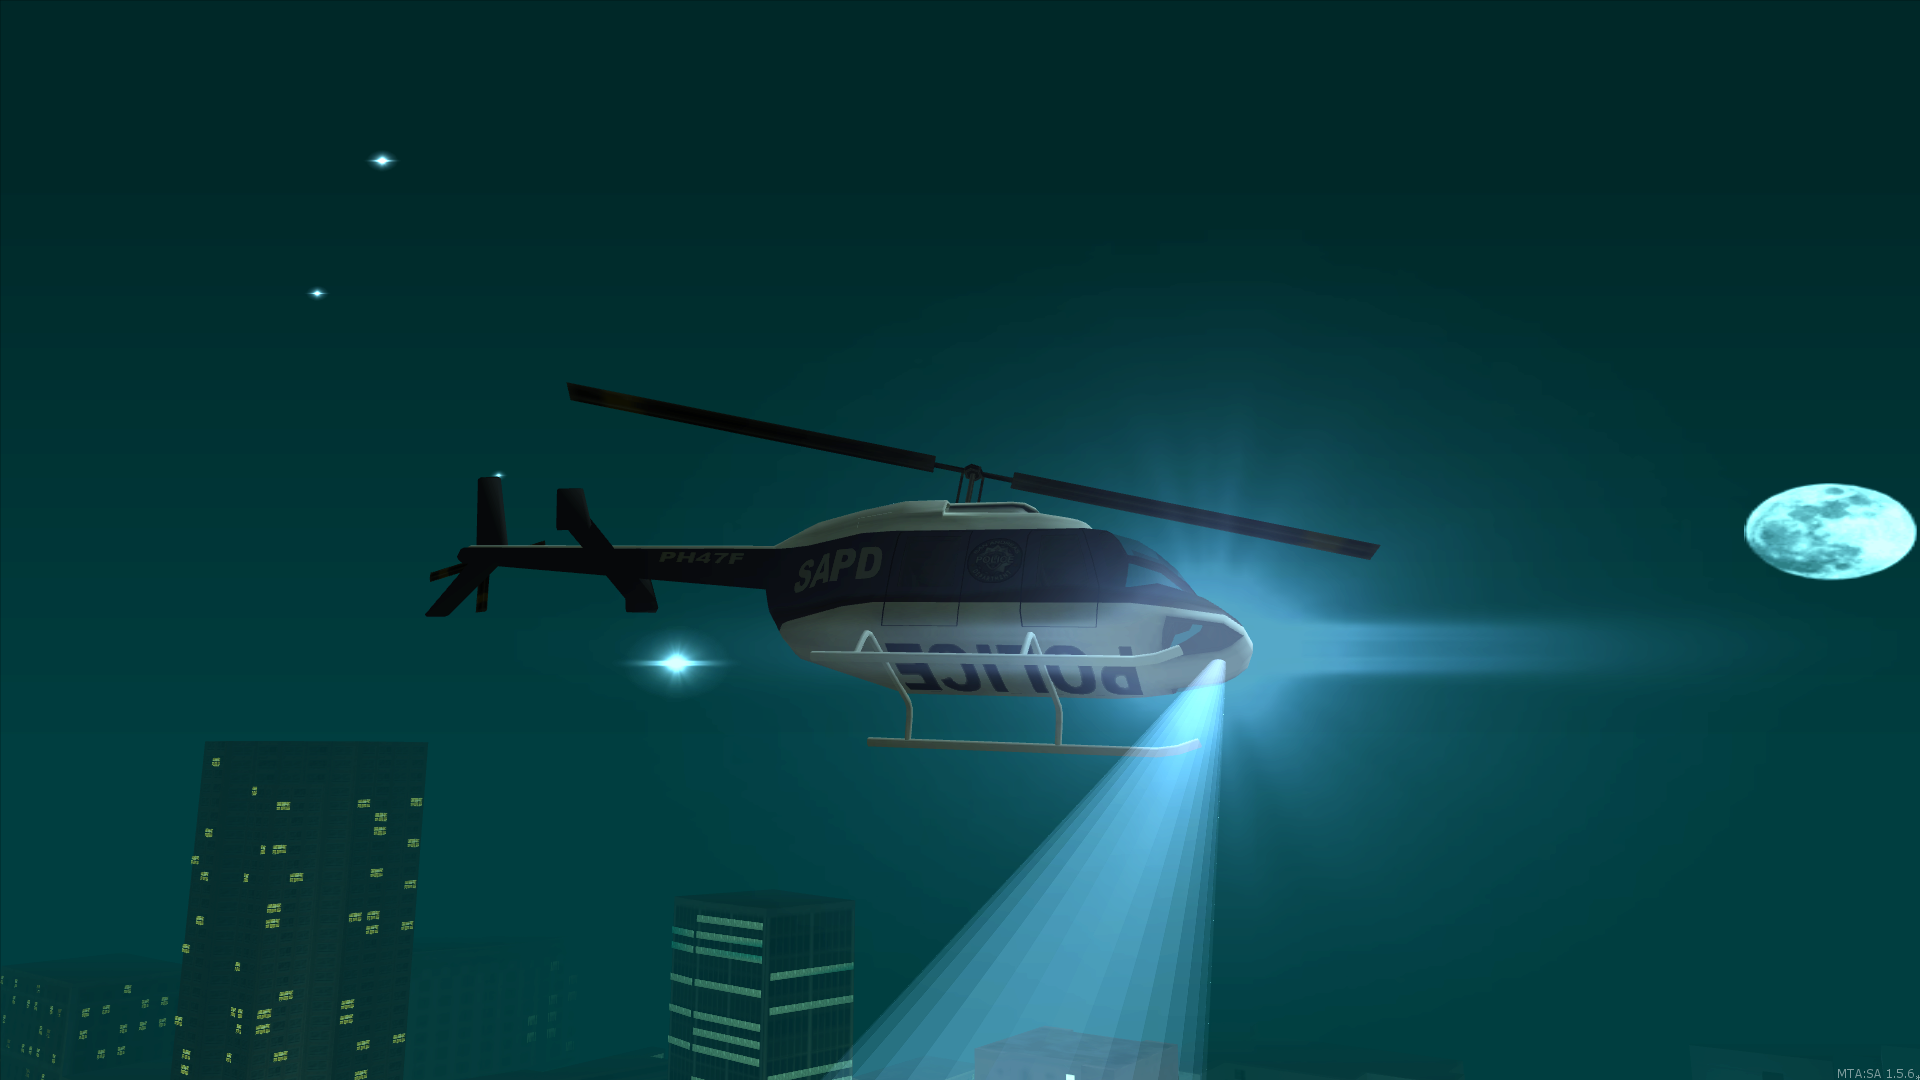 Air-14 on the night shift